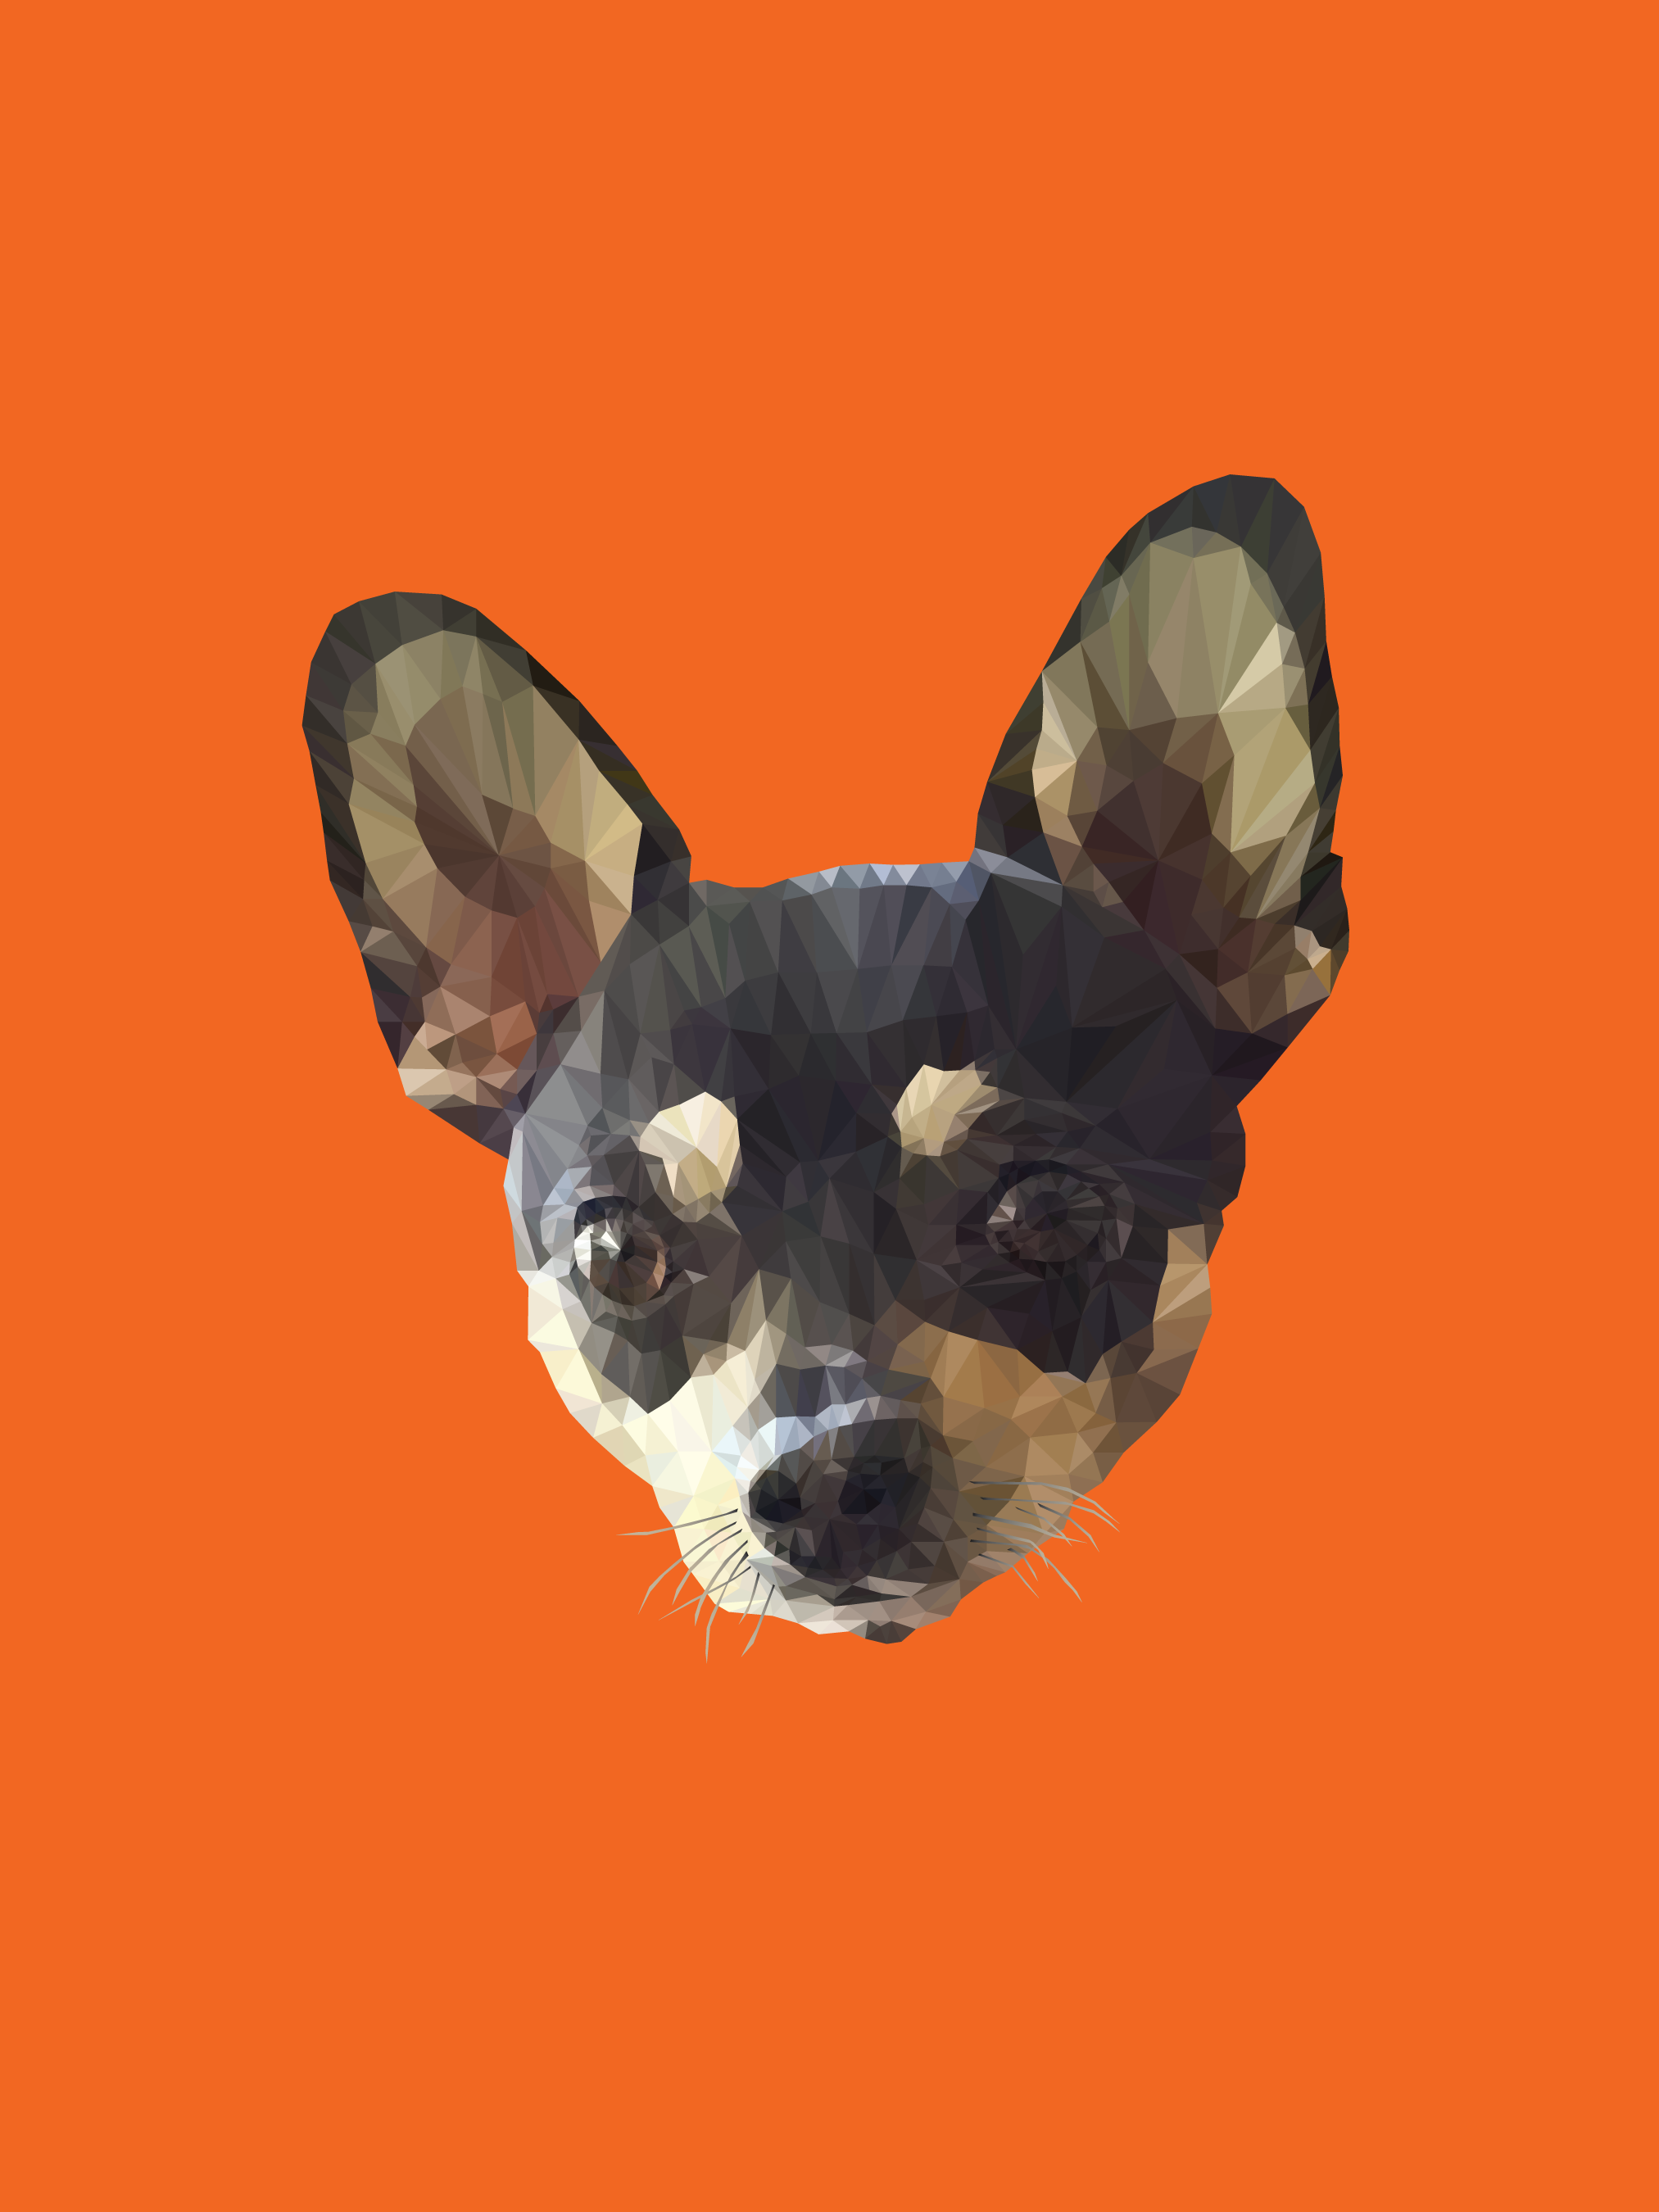 Low Poly Chihuahua illustration